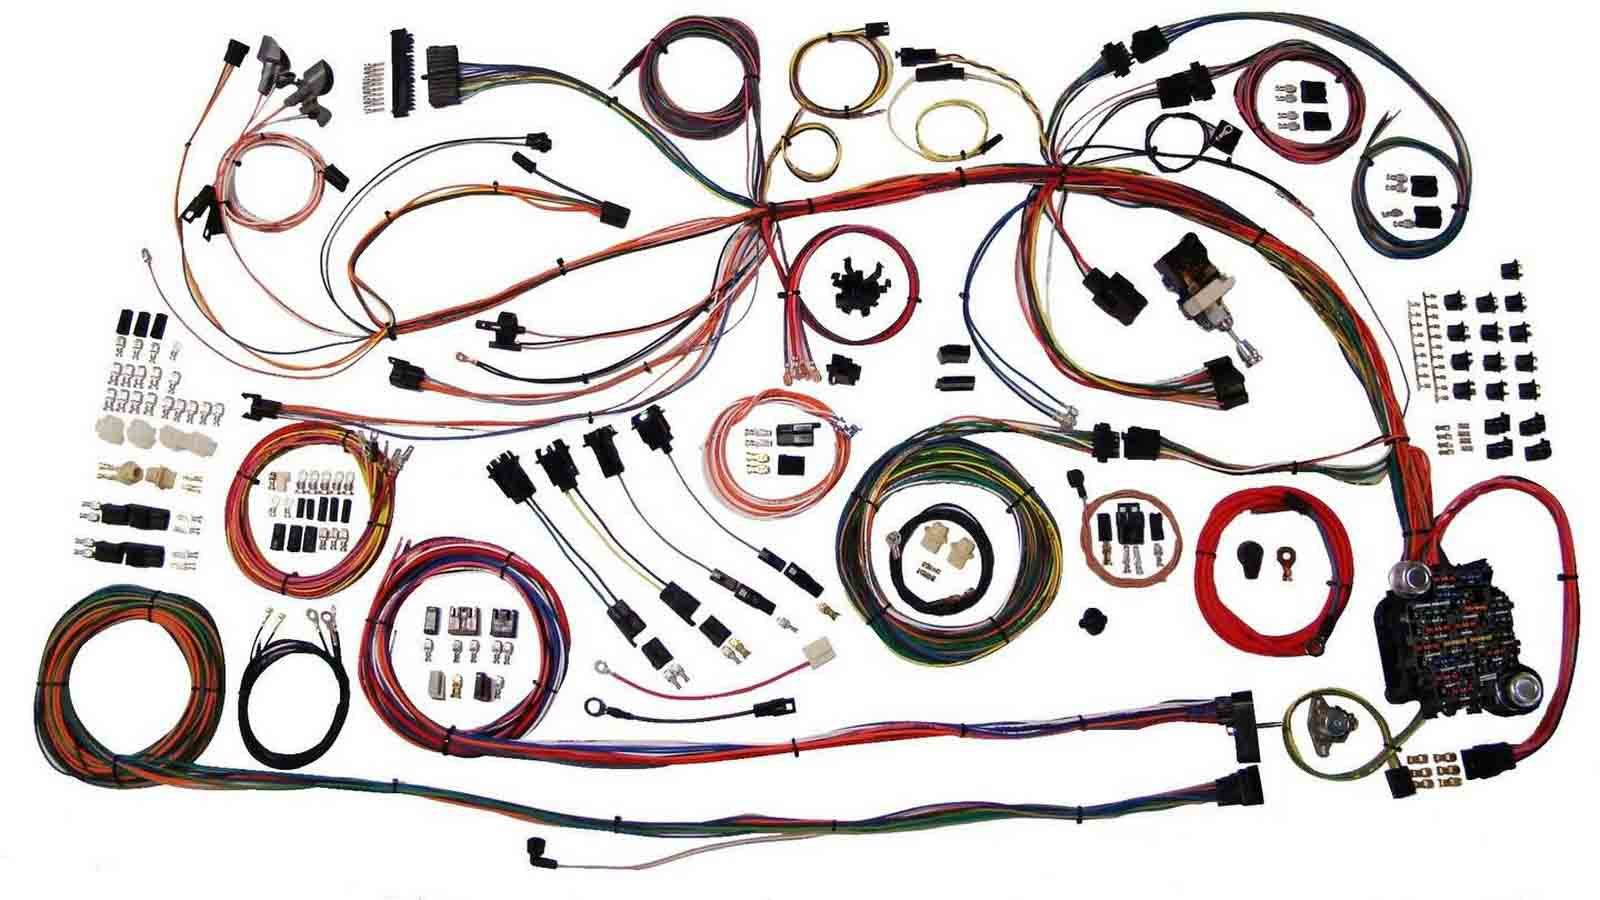 American Autowire 510158 Car Wiring Harness, Classic Update, Complete, GM A-Body 1968-69, Kit